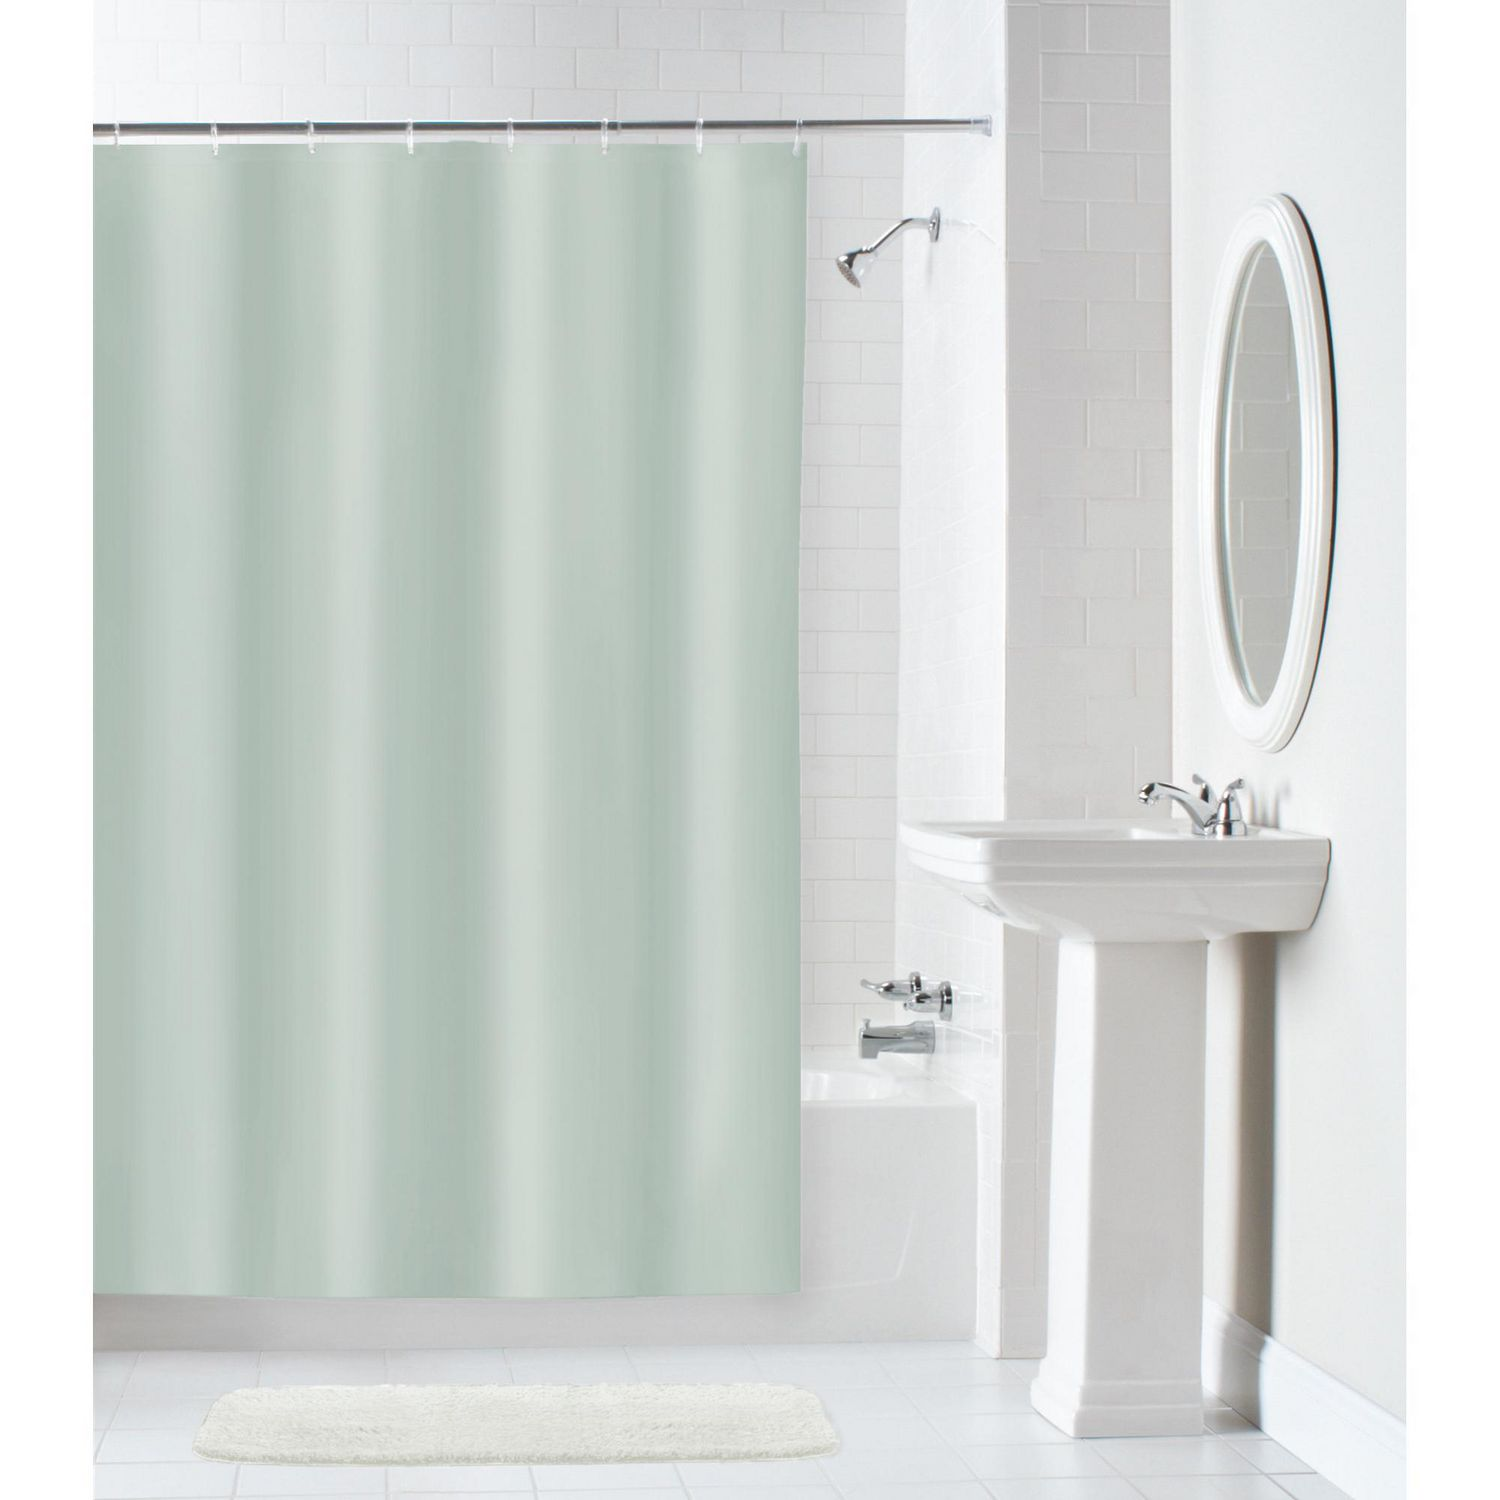 100 Percent Waterproof Fabric Shower Curtain Or Liner